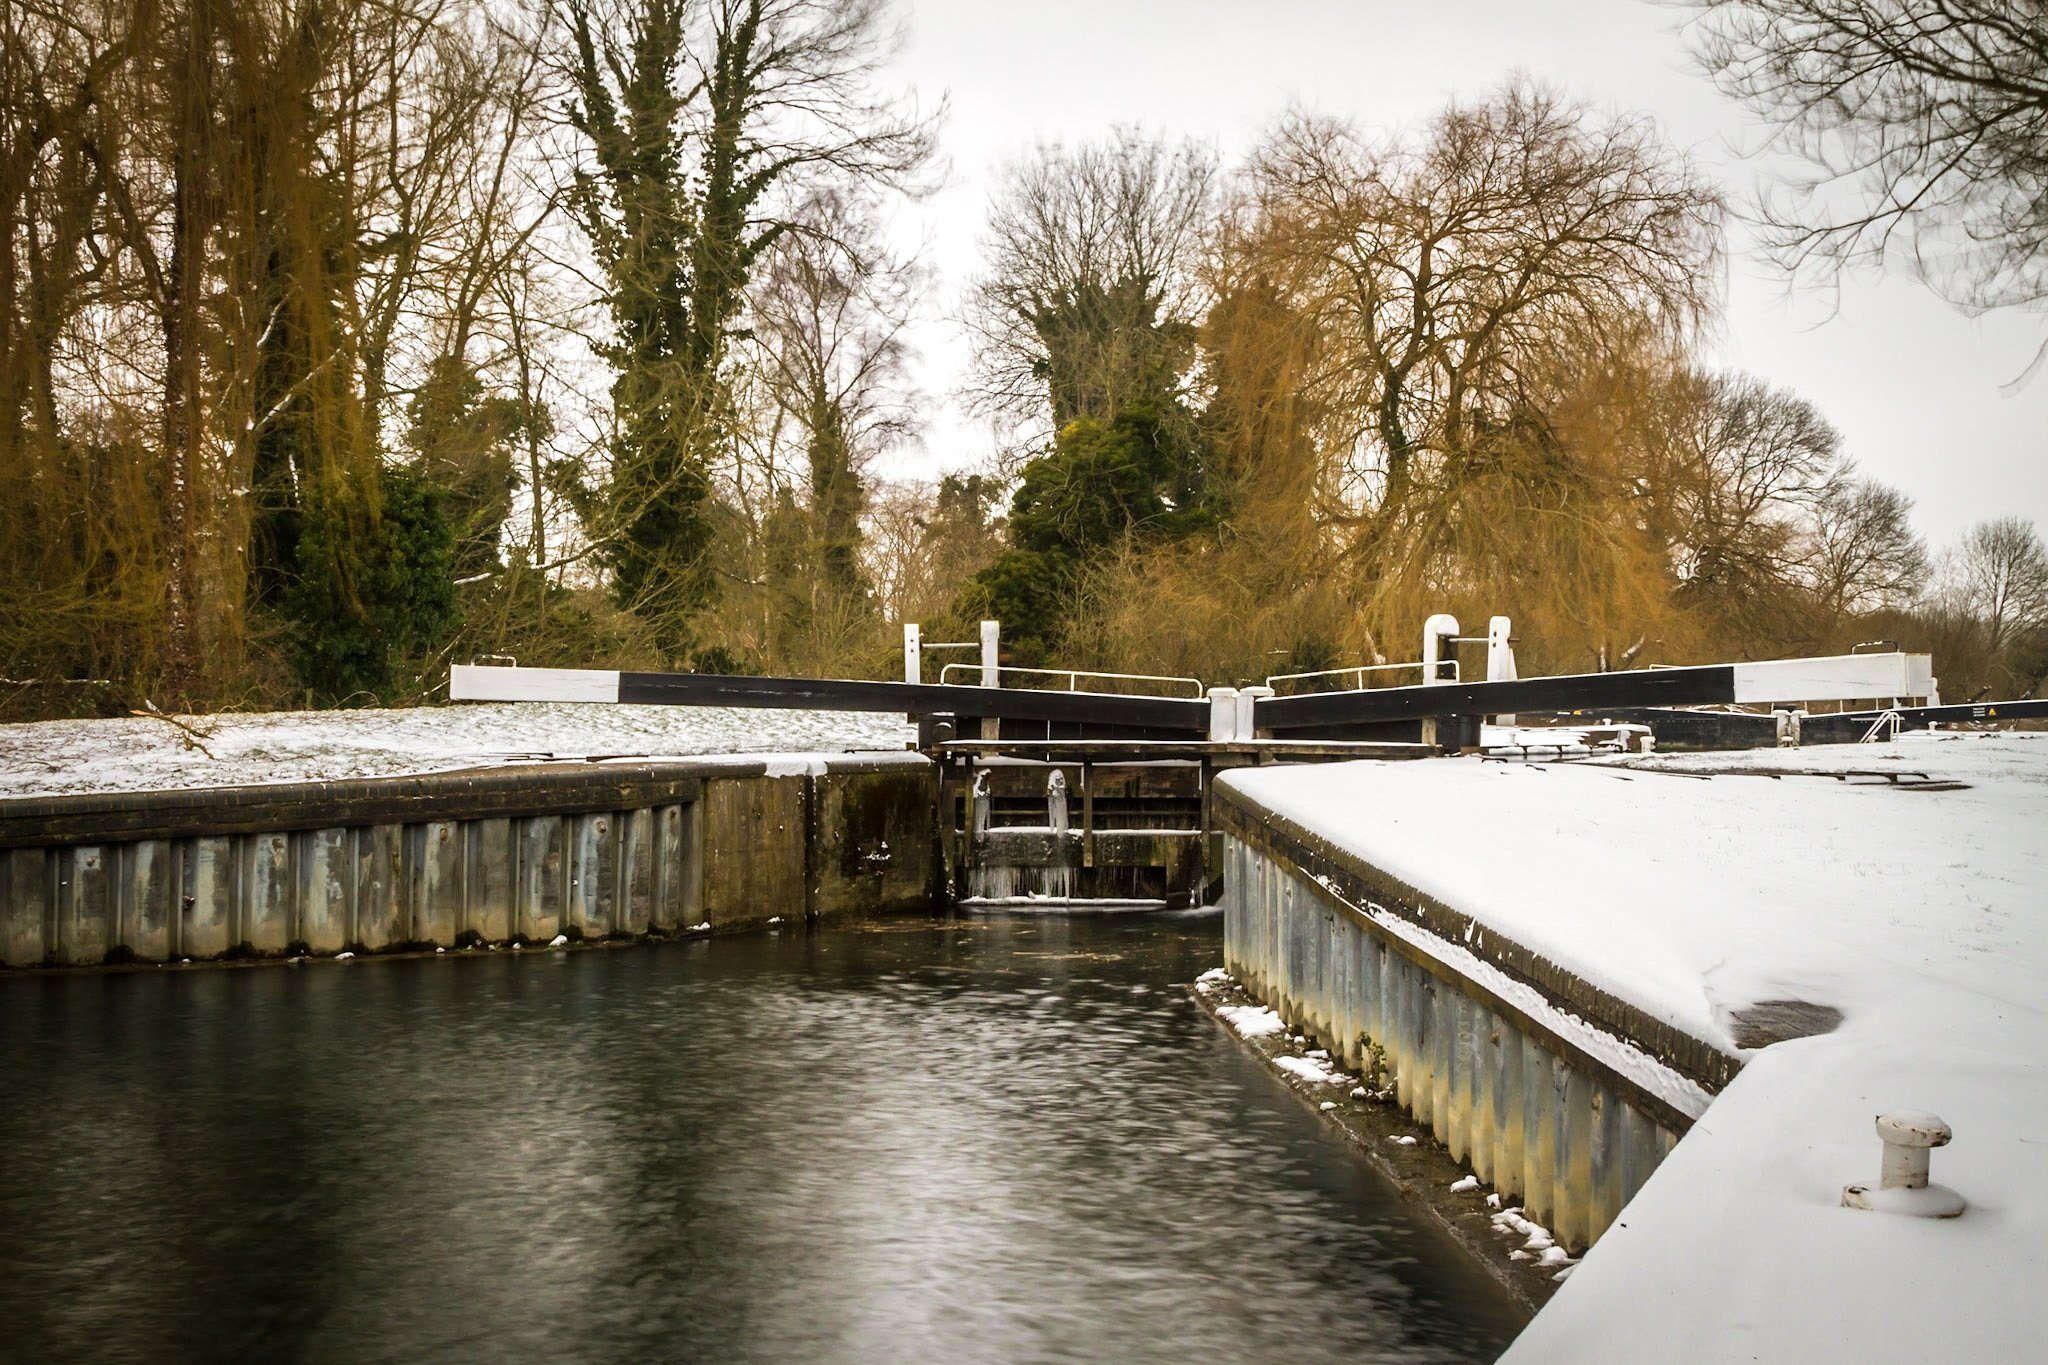 Kennet and Avon Canal lock number 89